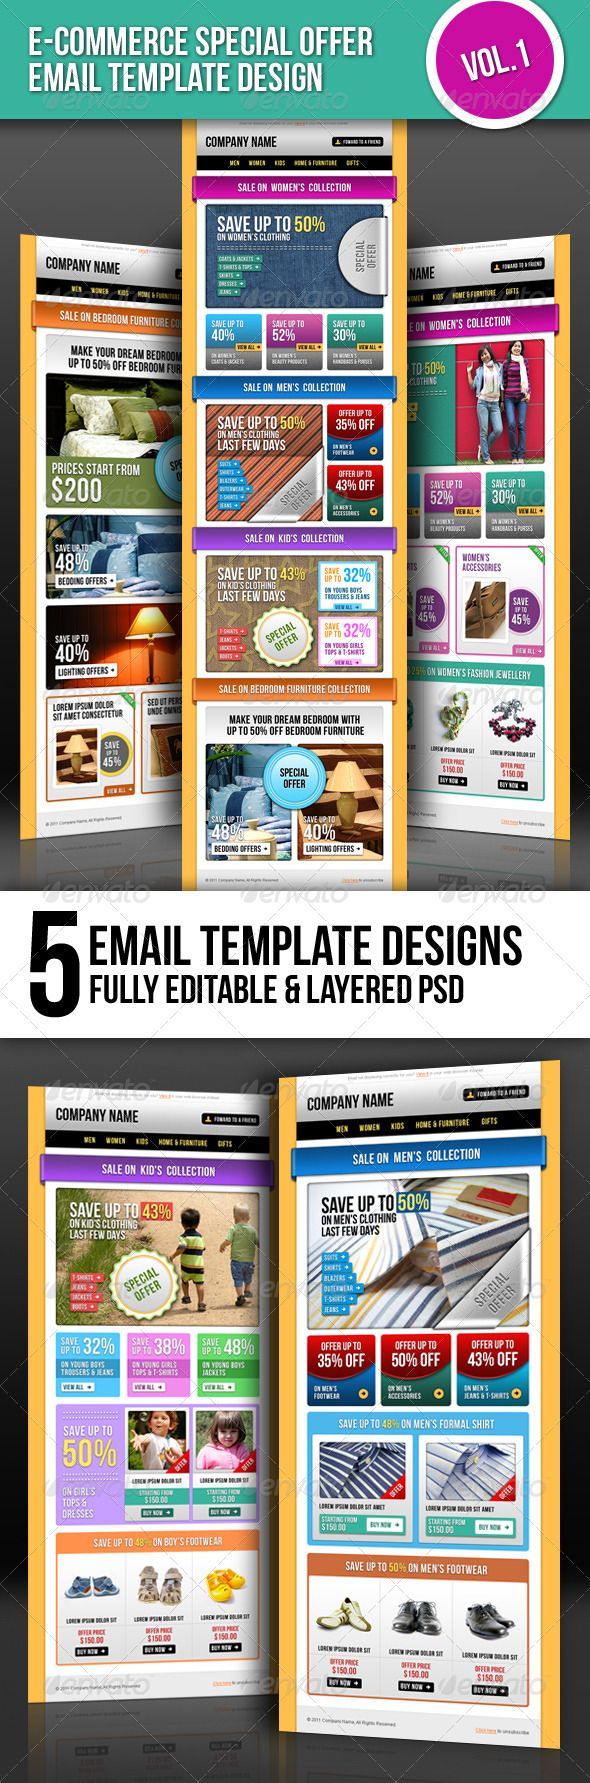 E-commerce Special Offer Email Template Vol.1